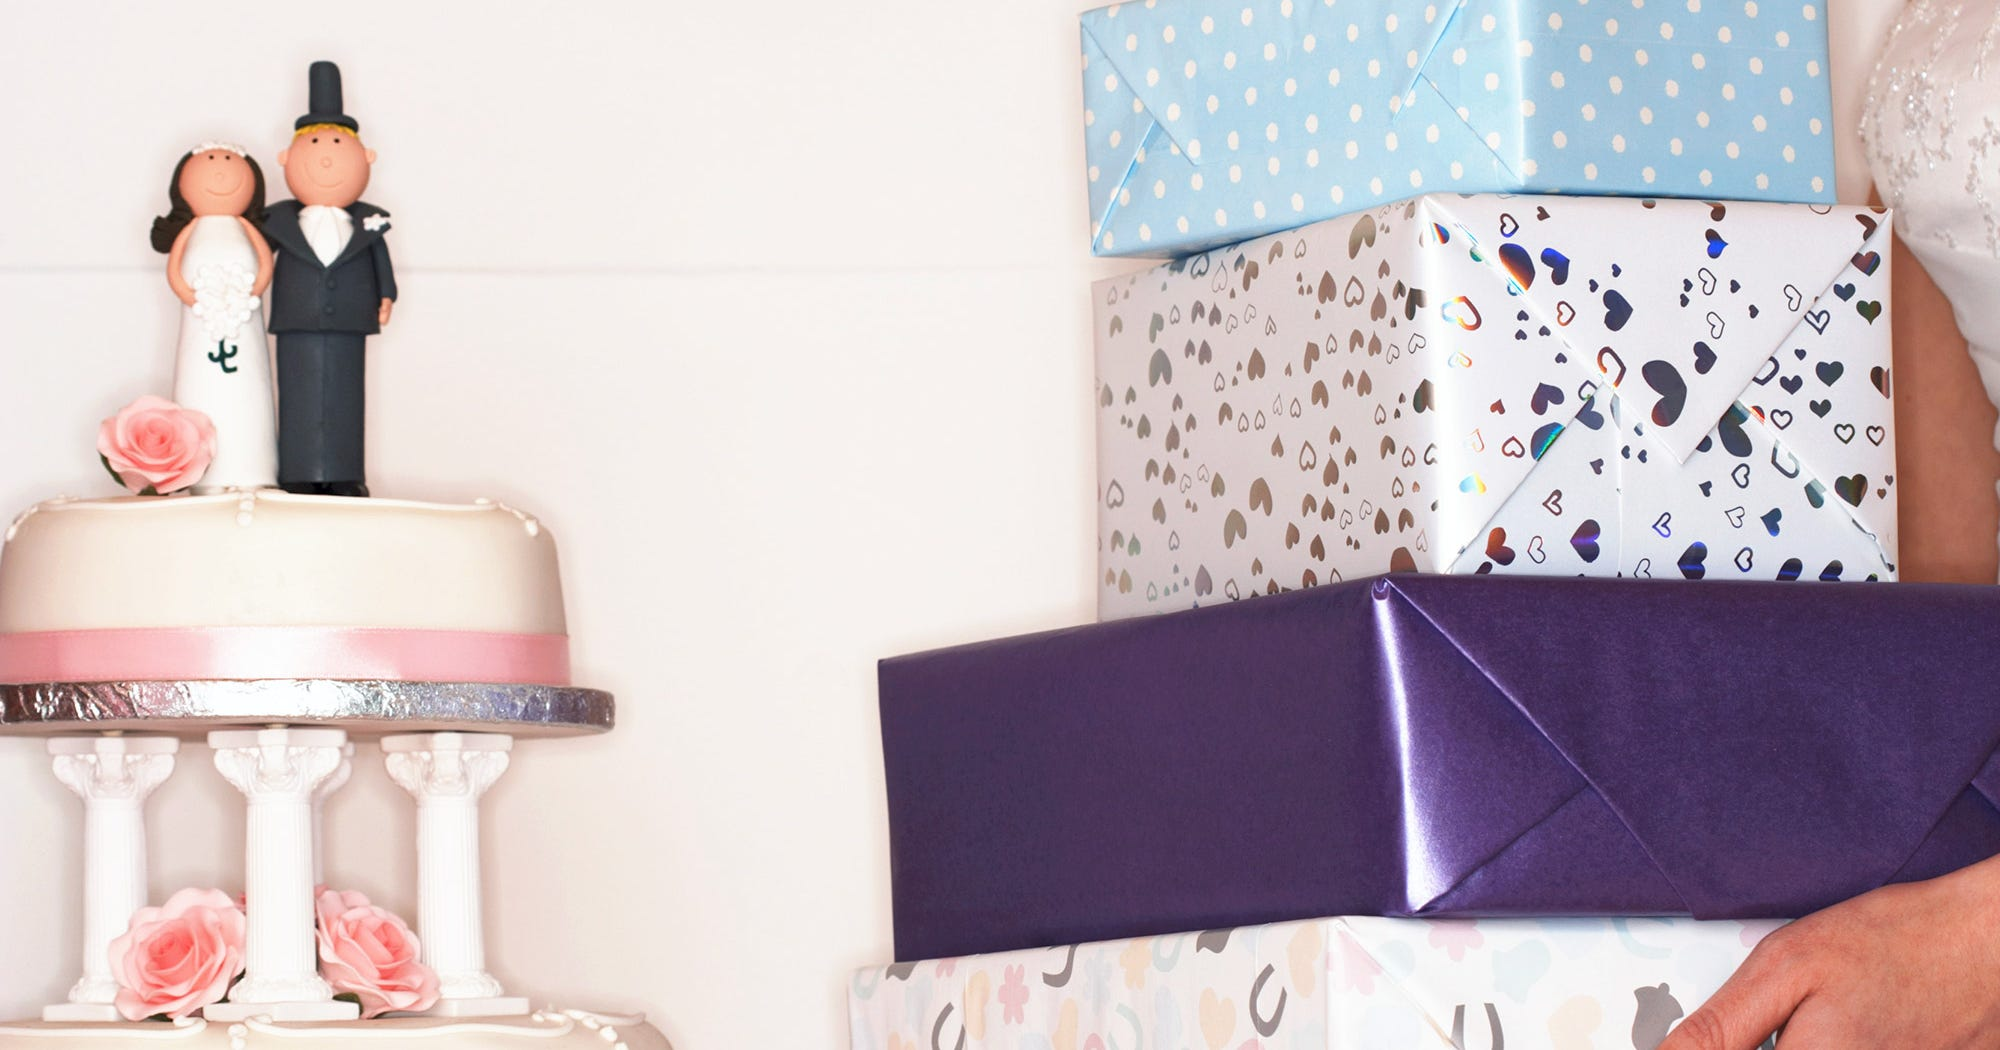 Average Monetary Gift For A Wedding: Wedding Guests Gifts Average Price